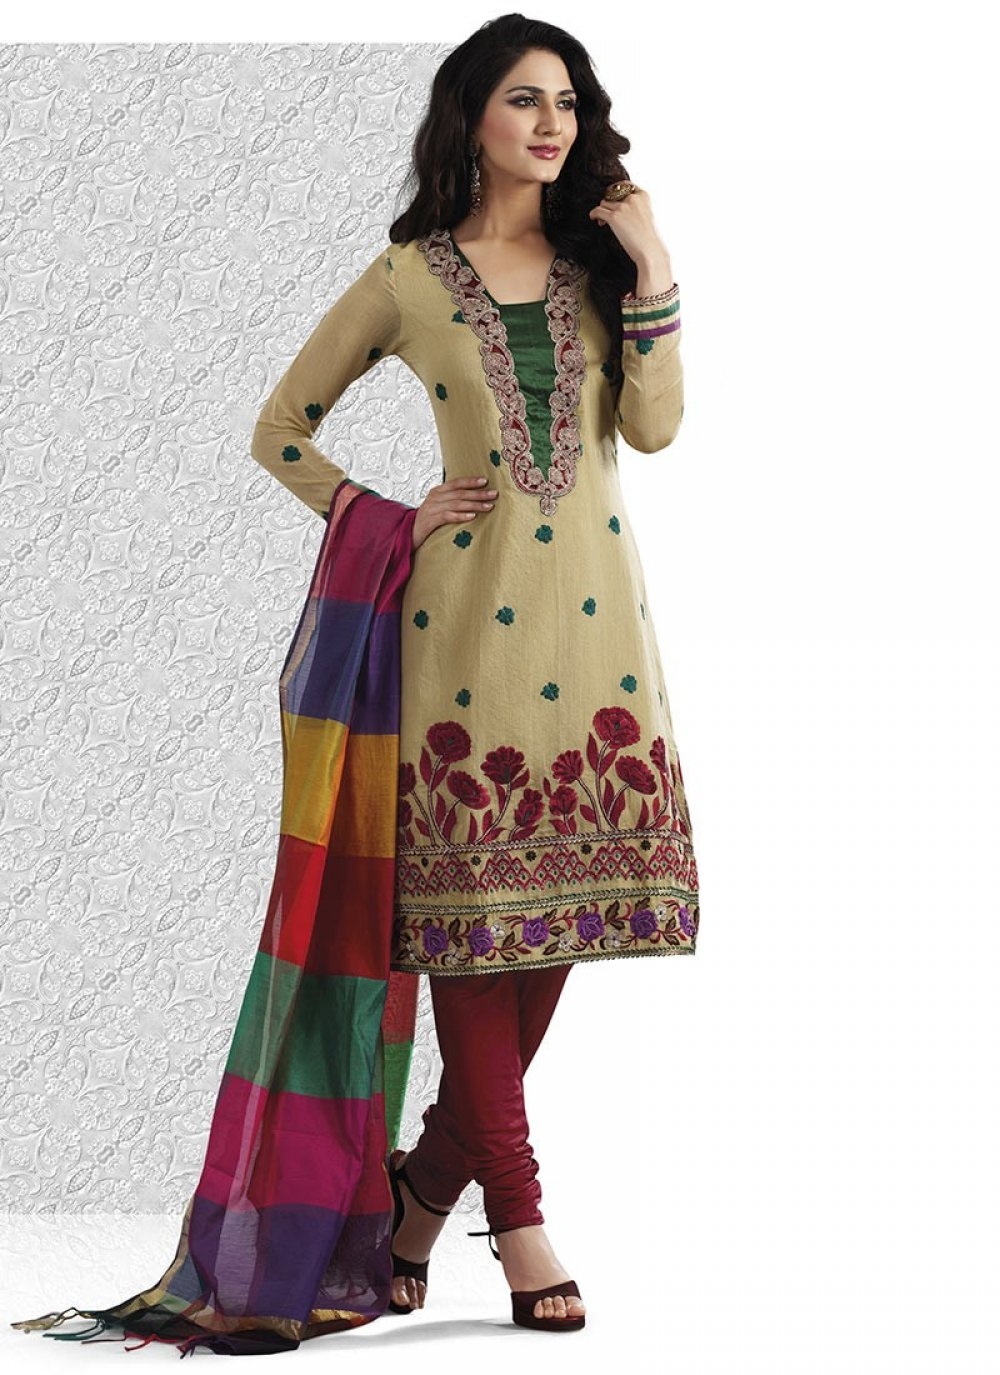 Enigmatic Bige Brown Salwar Kameez